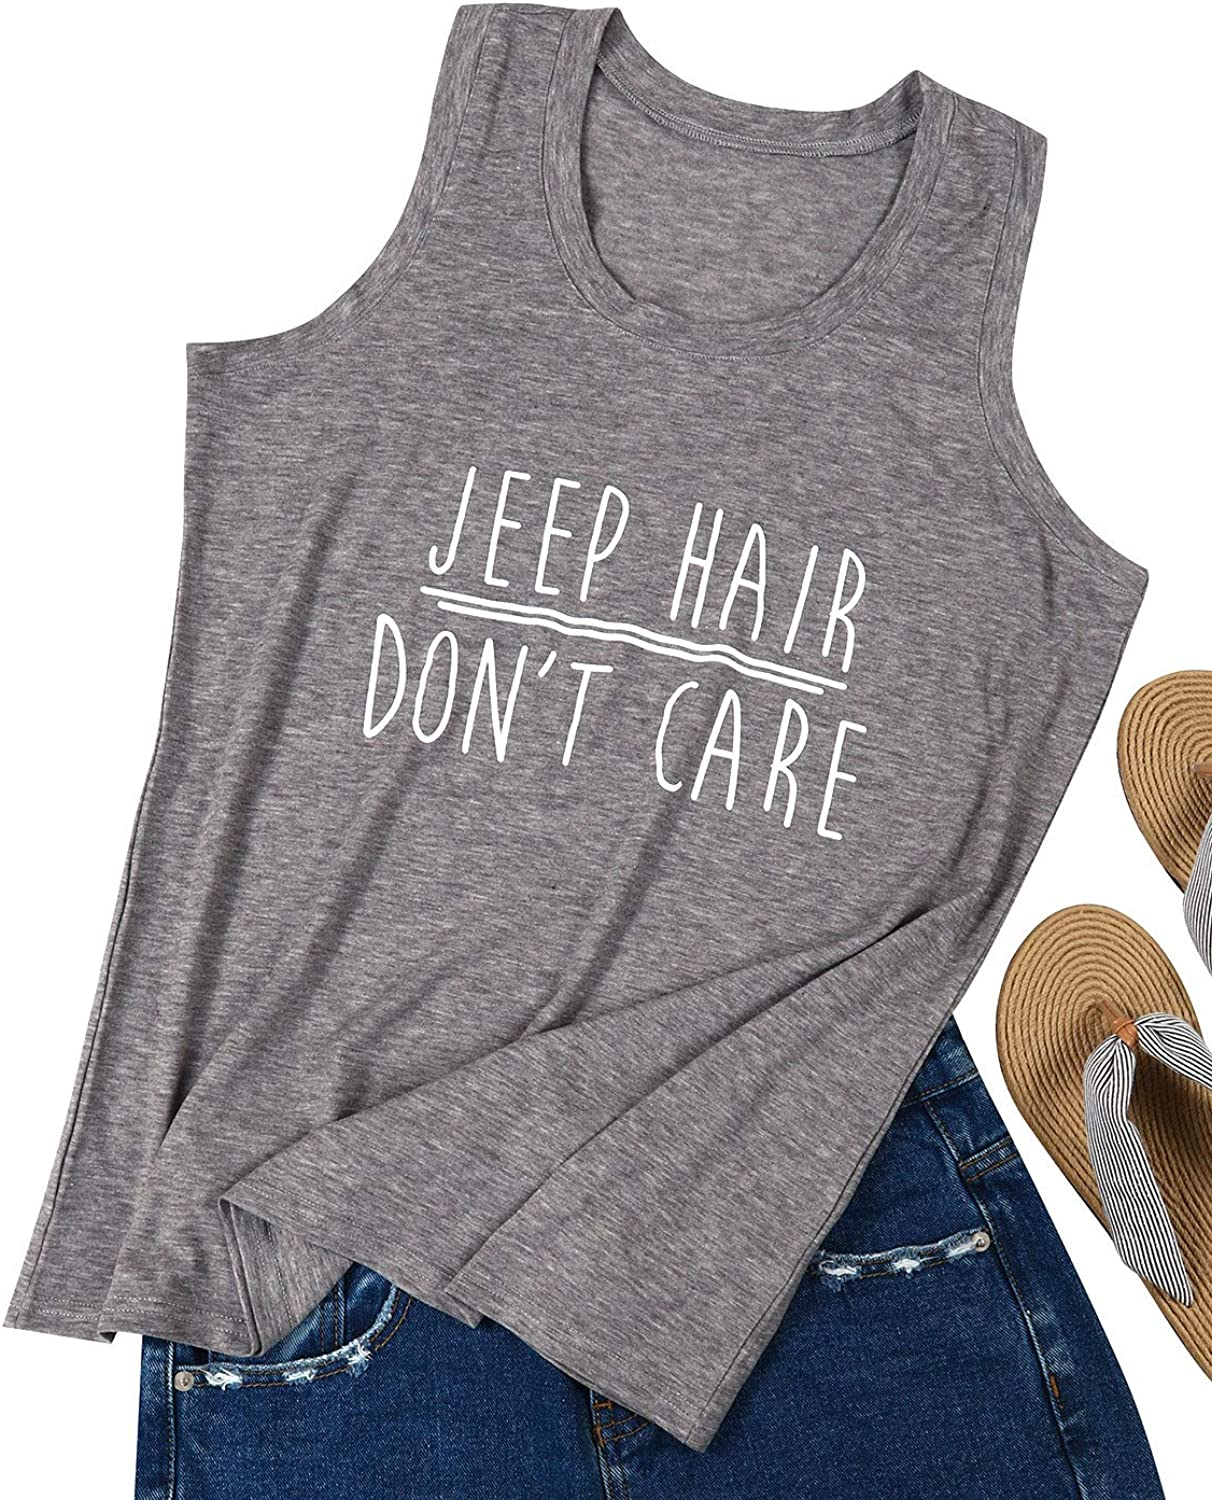 ZJP Women Grey Round Neck Jeep Hair Don't Care Letter Print Shirt Tank Tops Tee